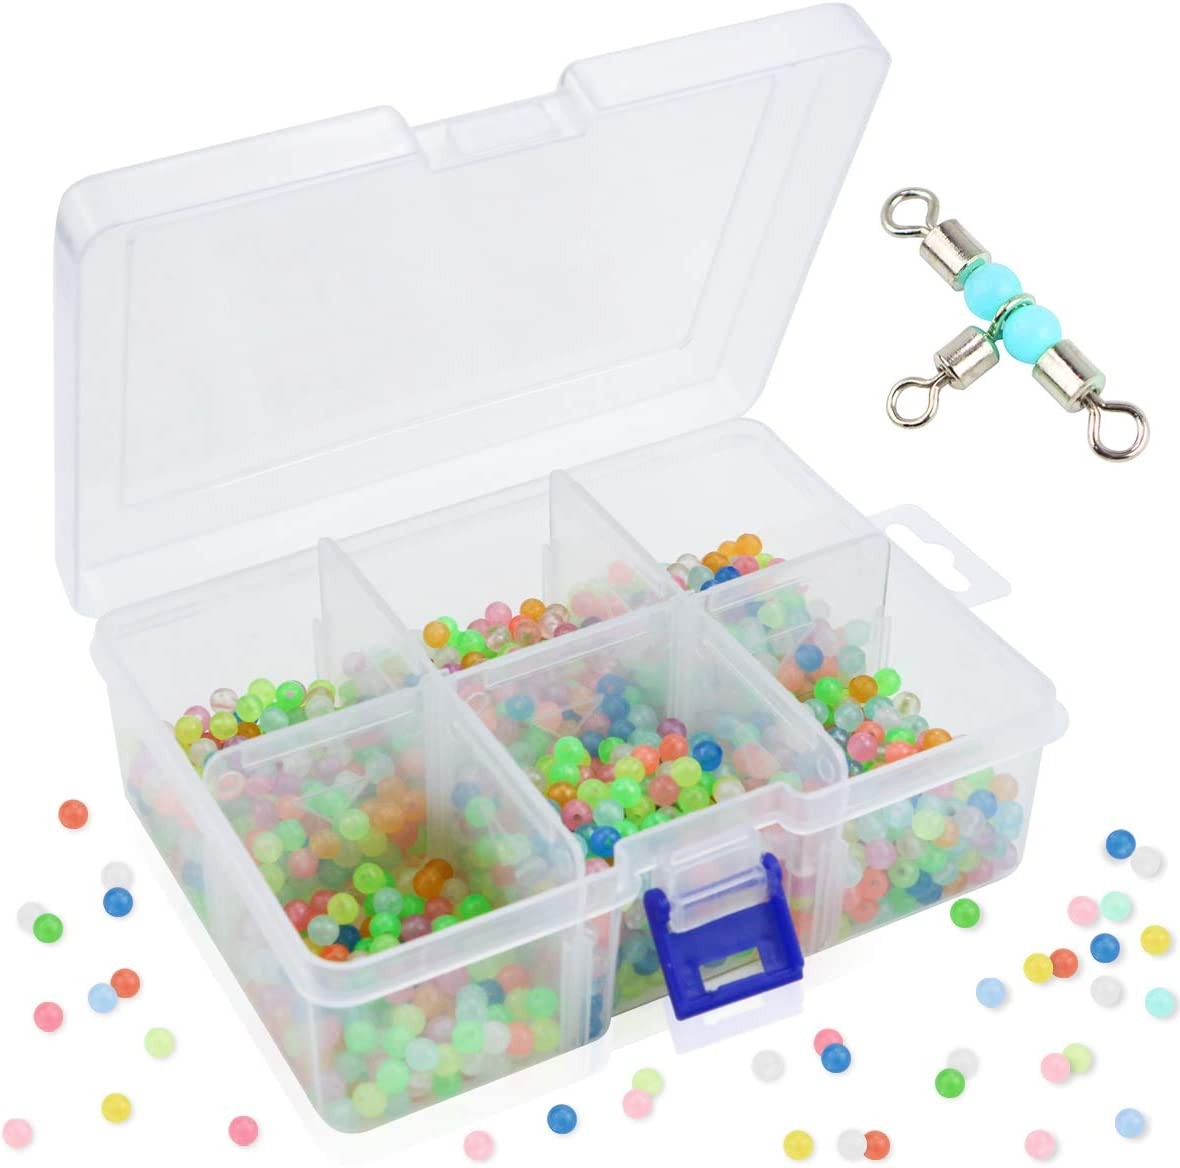 MotBach 1500 Pcs Special price 6mm Sales for sale Round Beads Glow Fishing Float Rig